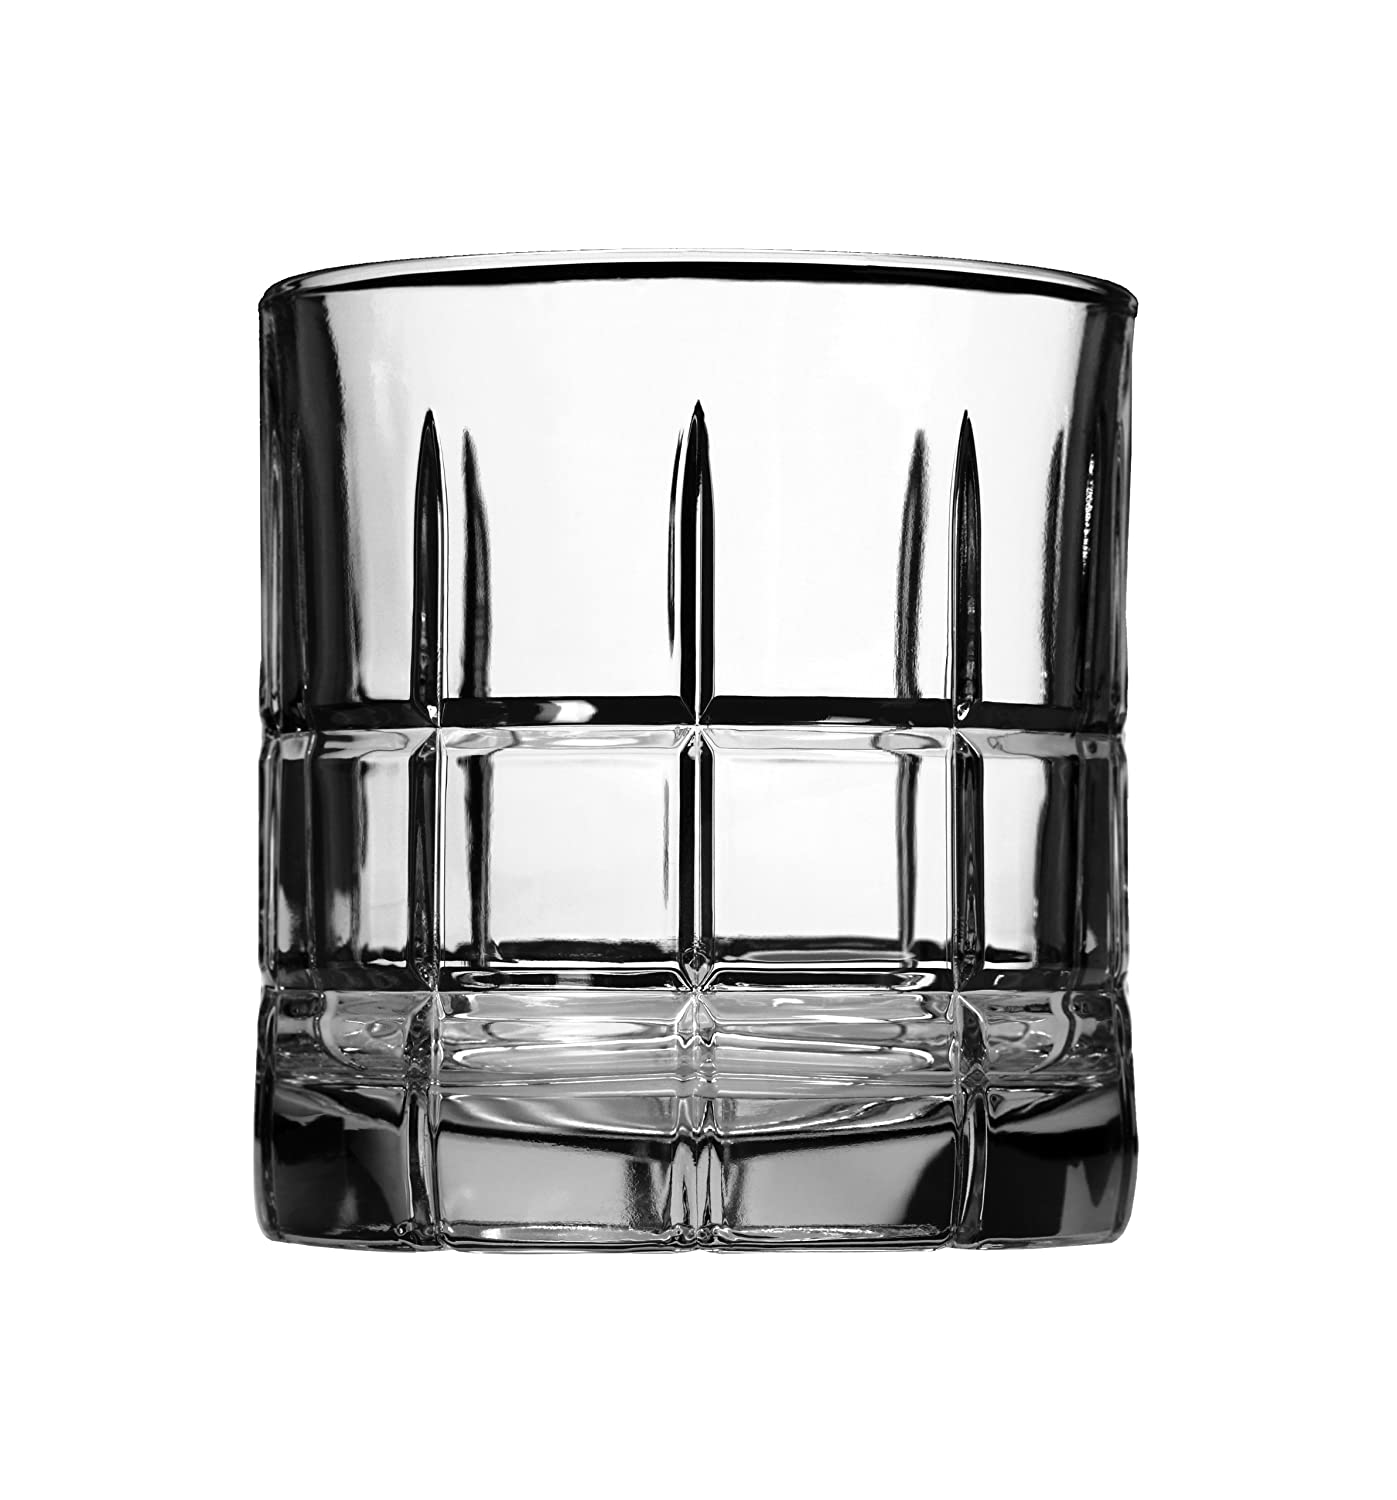 Anchor Hocking Manchester Rocks Old Fashioned Whiskey Glasses, 10.5 oz (Set of 12) 68349